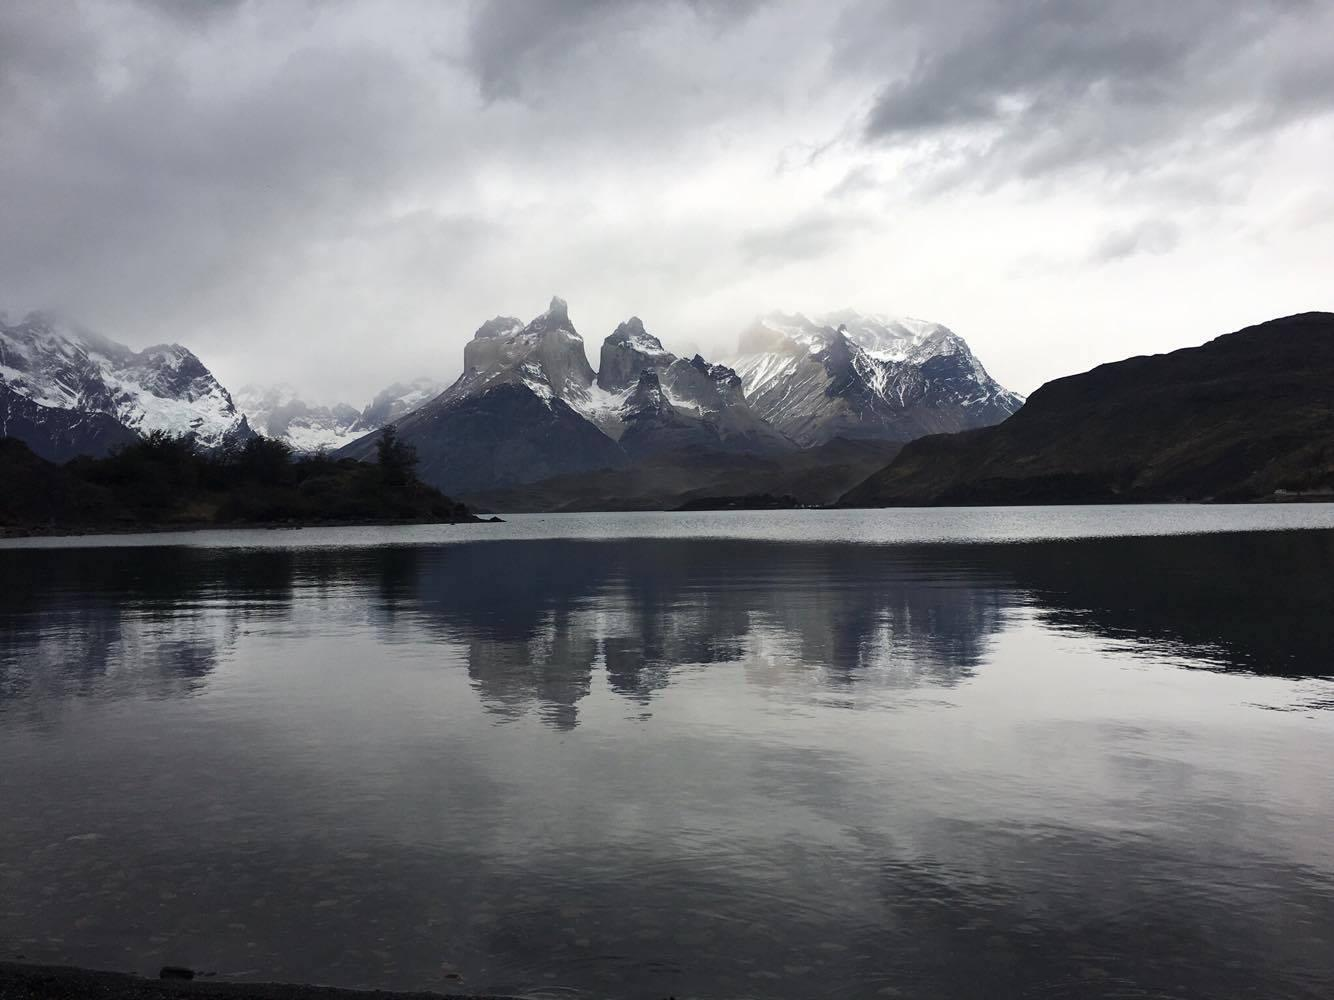 The views at Torres del Paine are so incredible that they can make a person feel one with nature.